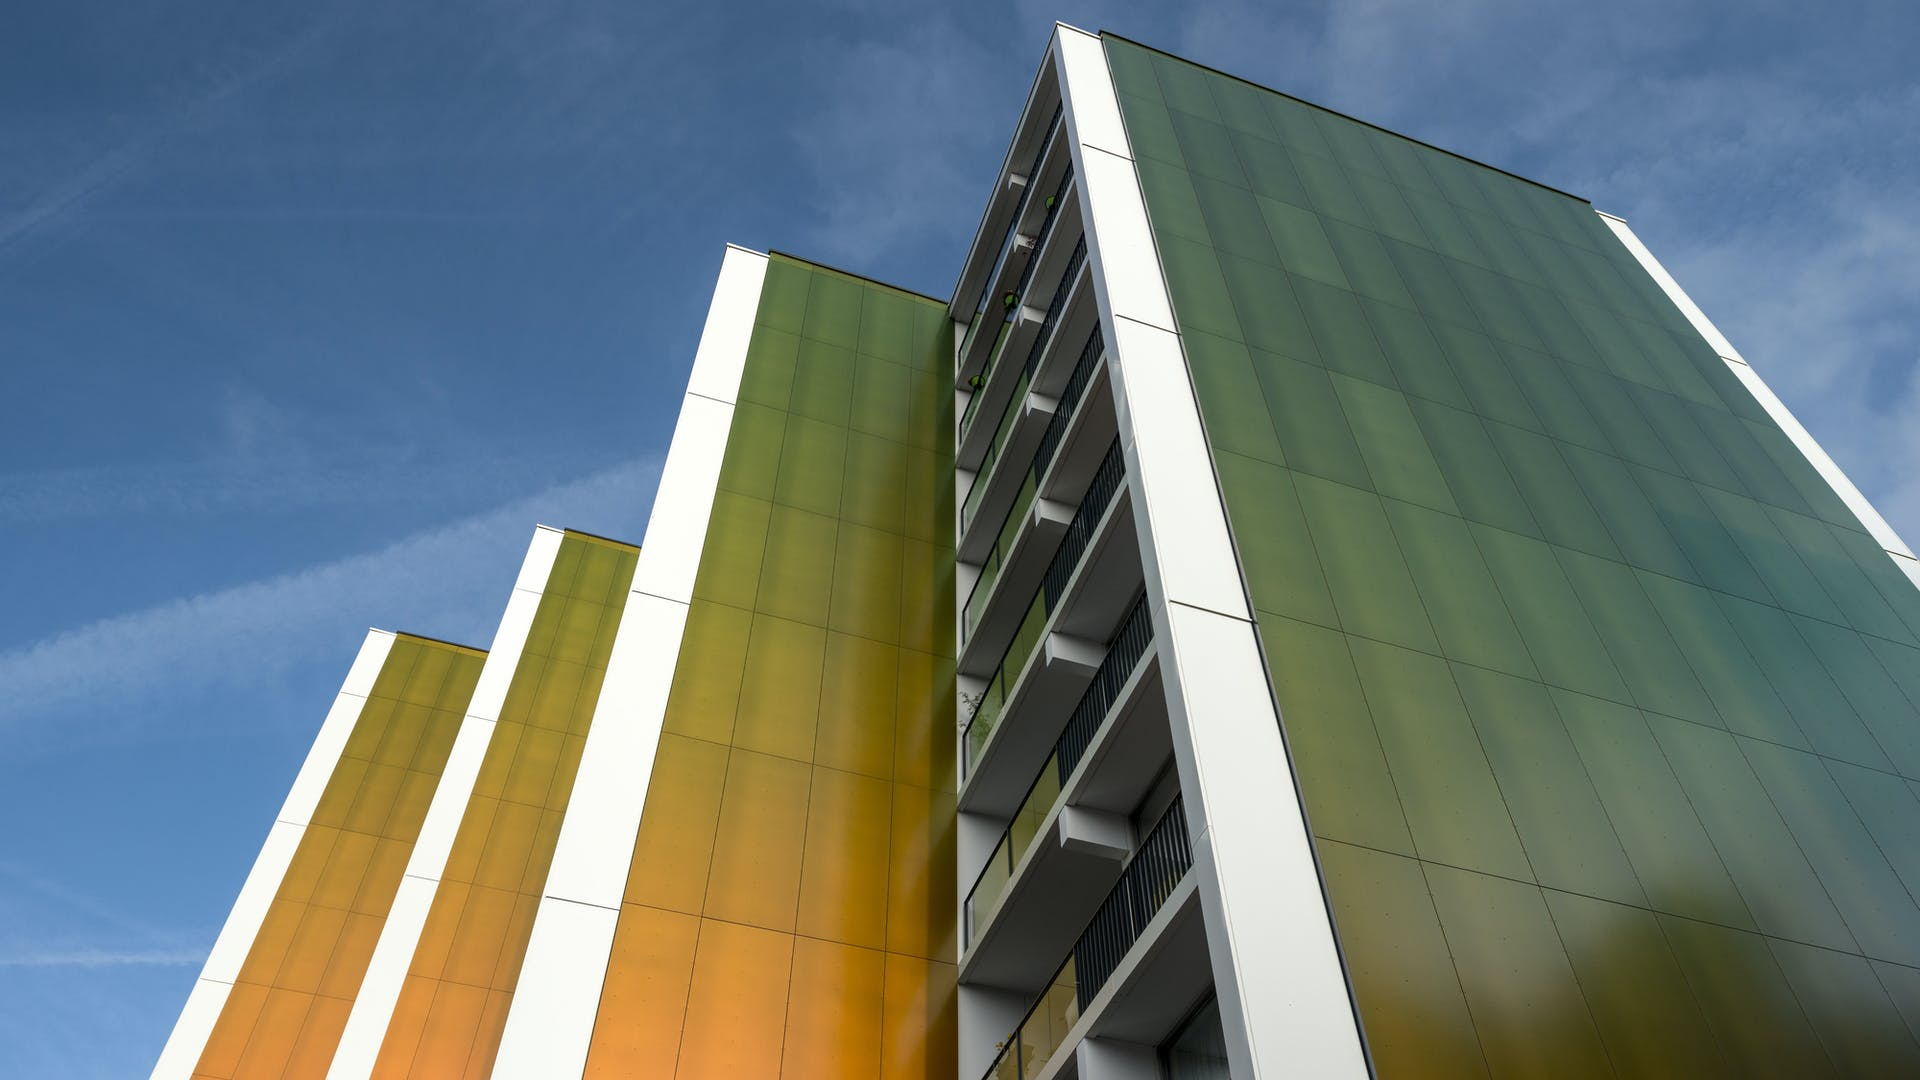 The Weezenhof, multi-unit family houses (Appartment blocks) in Nijmegen, The Netherlands. Cladded with Rockpanel Chameleon